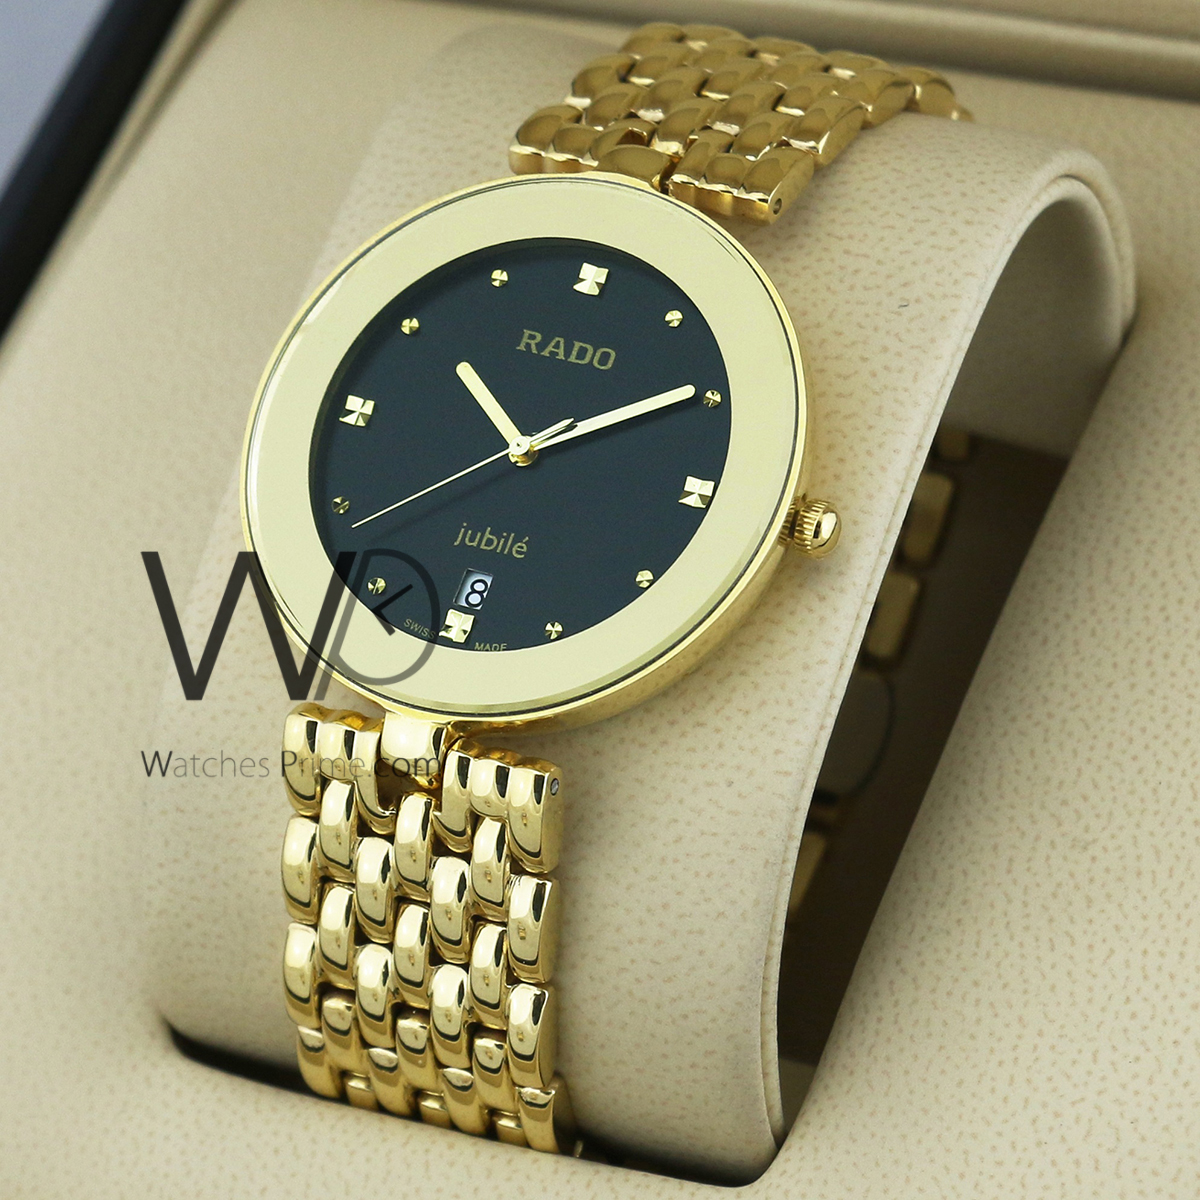 abc2a6eab RADO WATCH BLACK WITH STAINLESS STEEL GOLDEN BELT. SKU: 1256. Roll over  image to zoom in